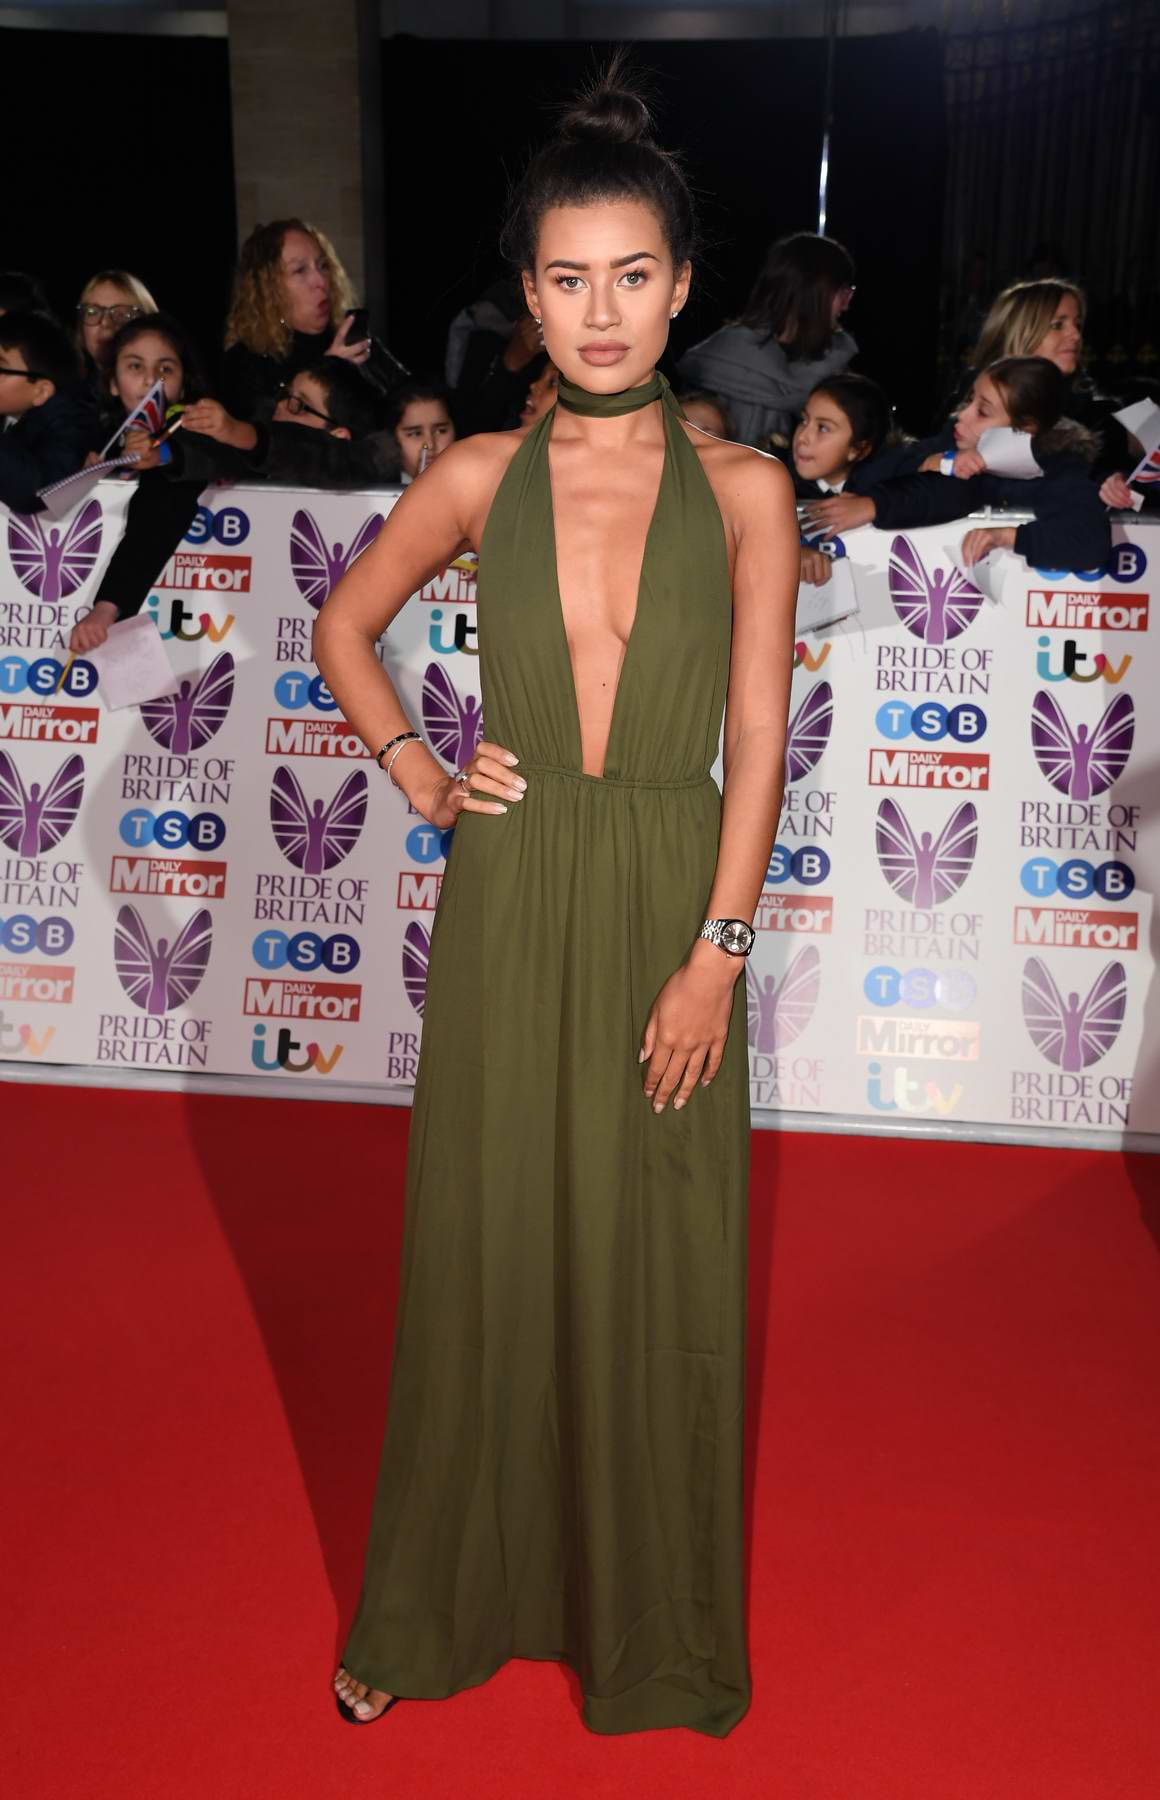 Montana Brown at the Pride of Britain Awards held at the Grosvenor House in London